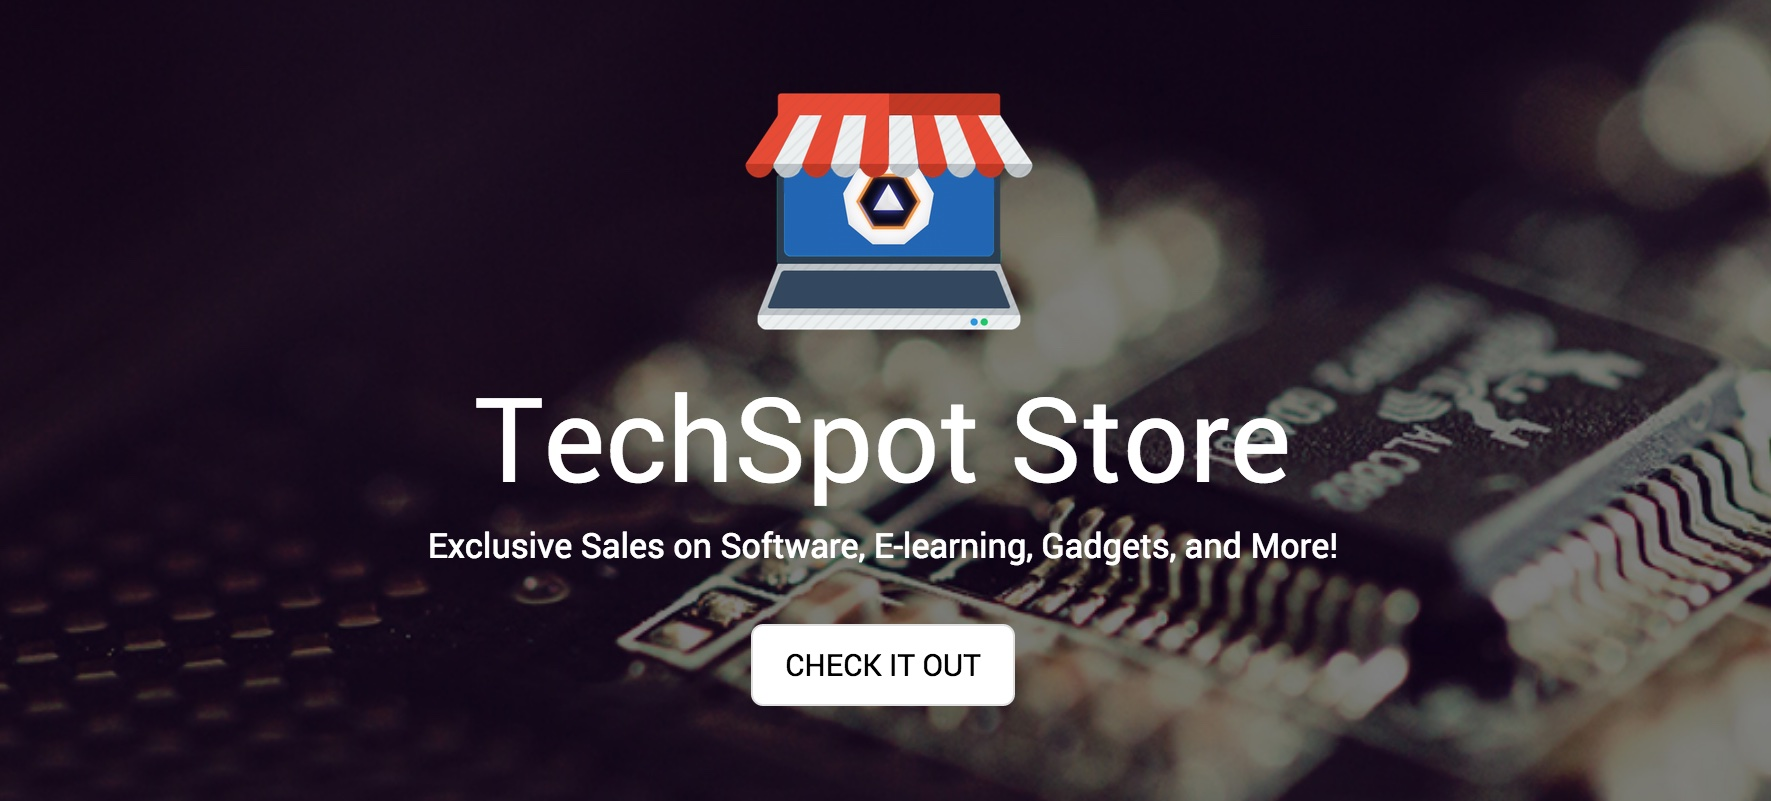 TechSpot Store Debuts: Get deals on gadgets, software & more